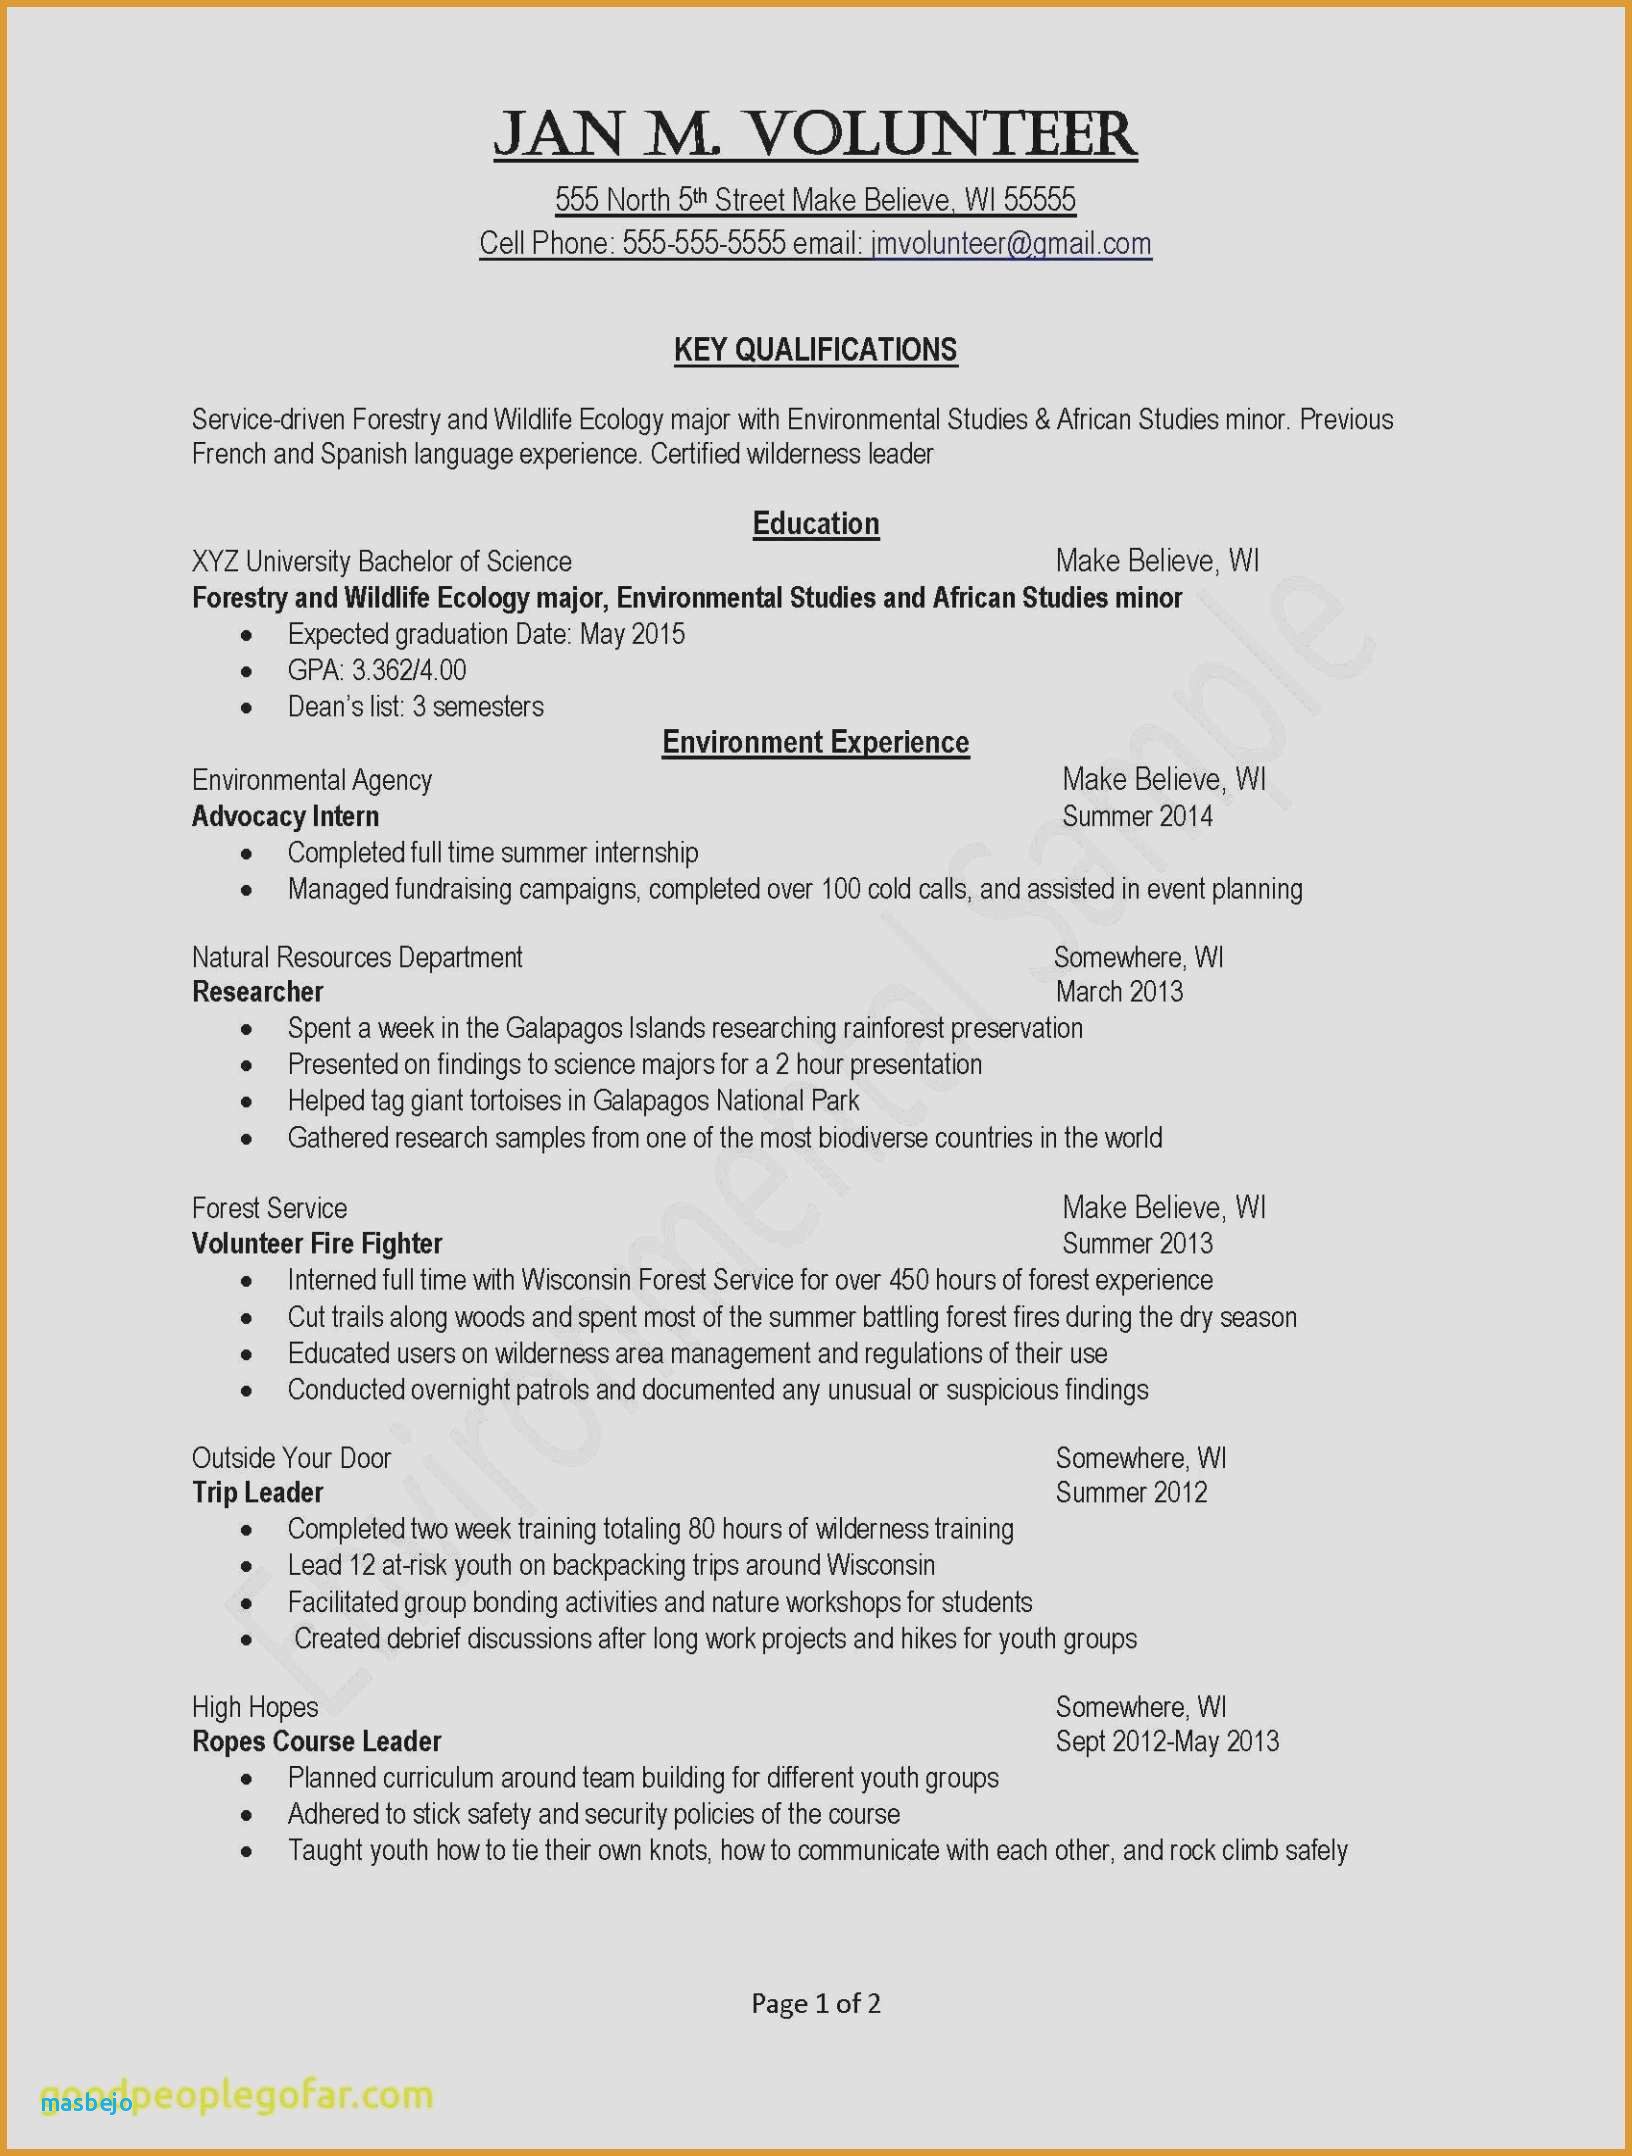 Resume Workshop Near Me - Example Resume Example Resume Skills Awesome Examples Resumes